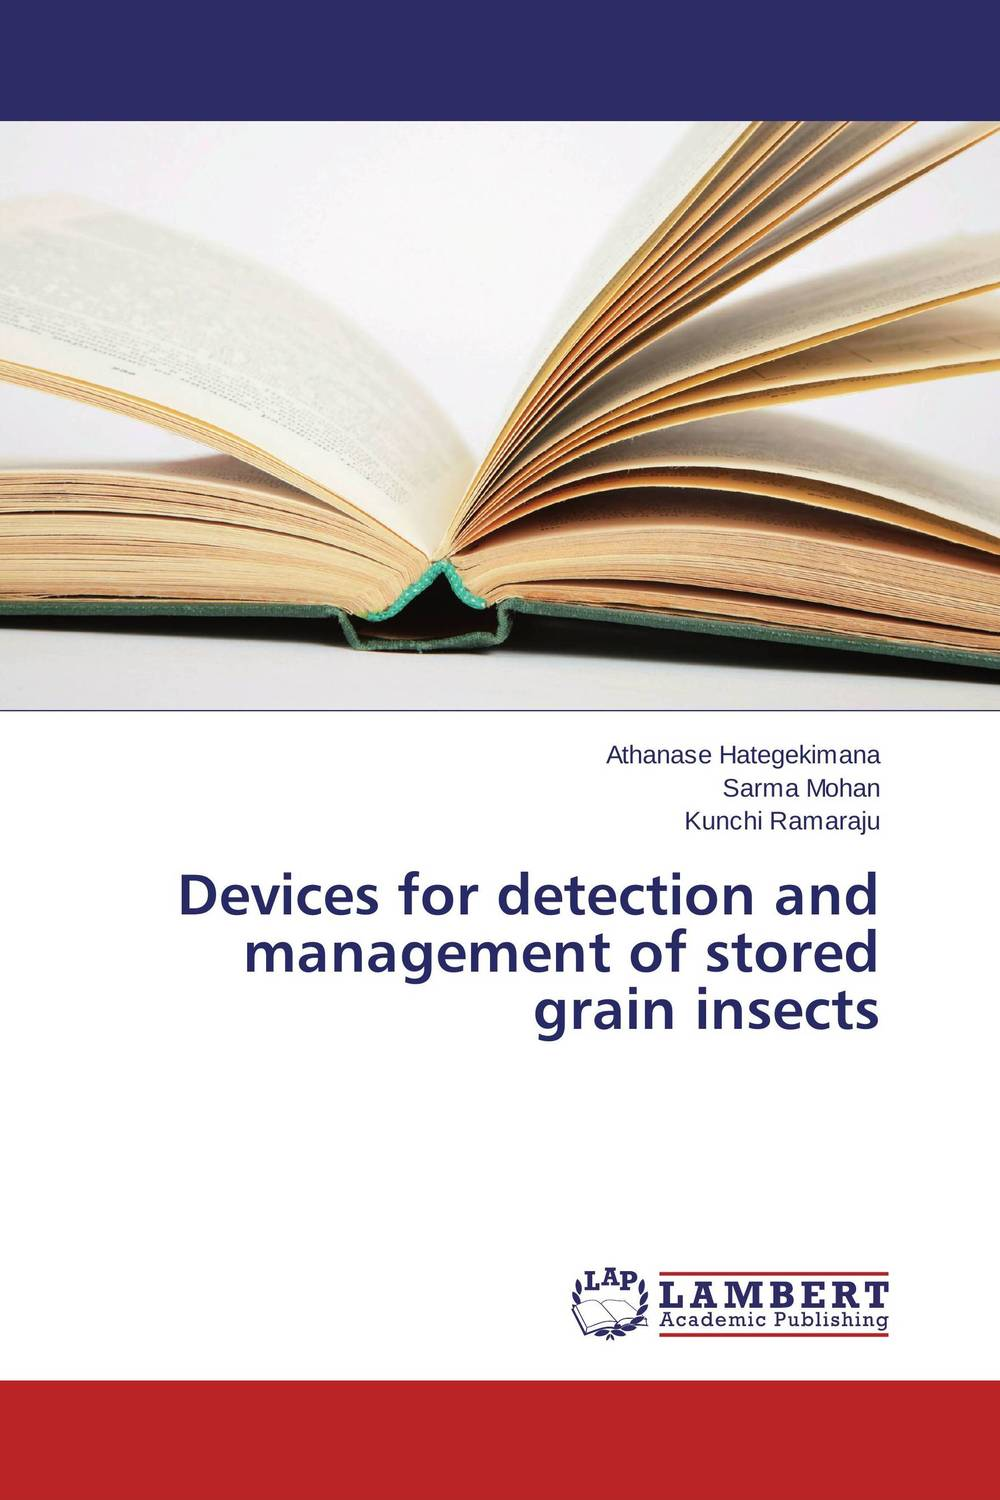 Devices for detection and management of stored grain insects devices for detection and management of stored grain insects